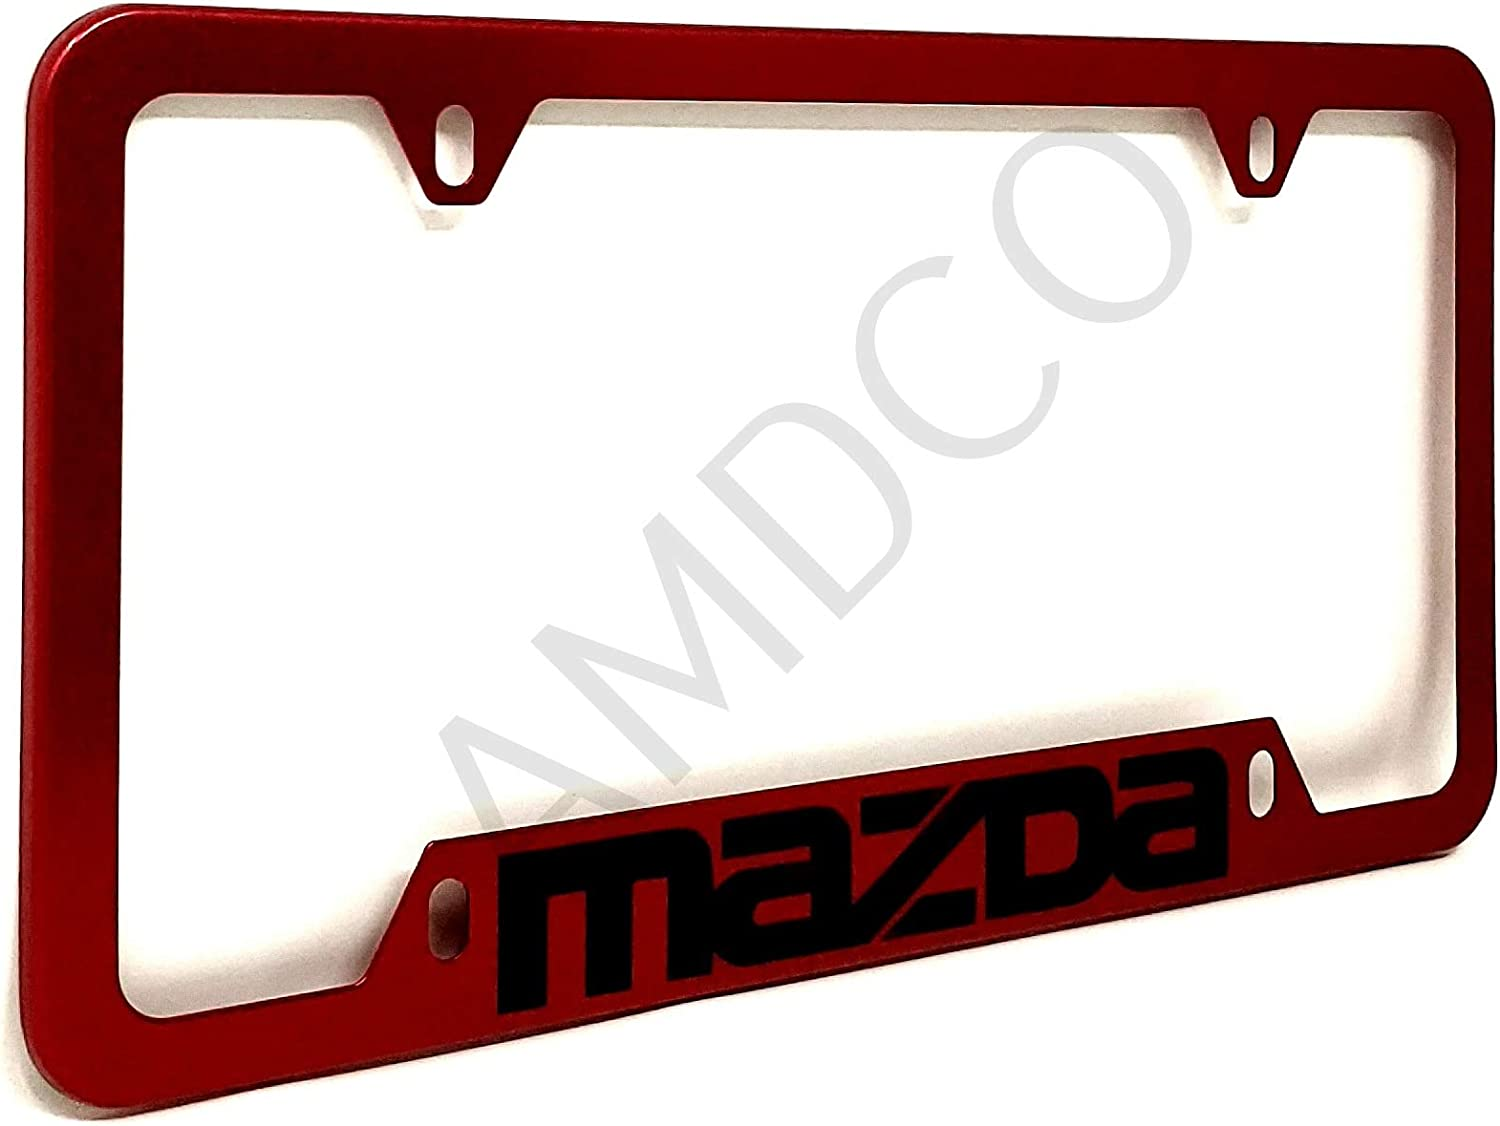 Pack of 1 AMDCO for CX 3 4 5 8 9 Speed 6 RX 8 Miata License Plate Cover Holder Frame Badge Stickers Decals with Strong 3M Includes Instructions Measure Before Purchase Fitment RED